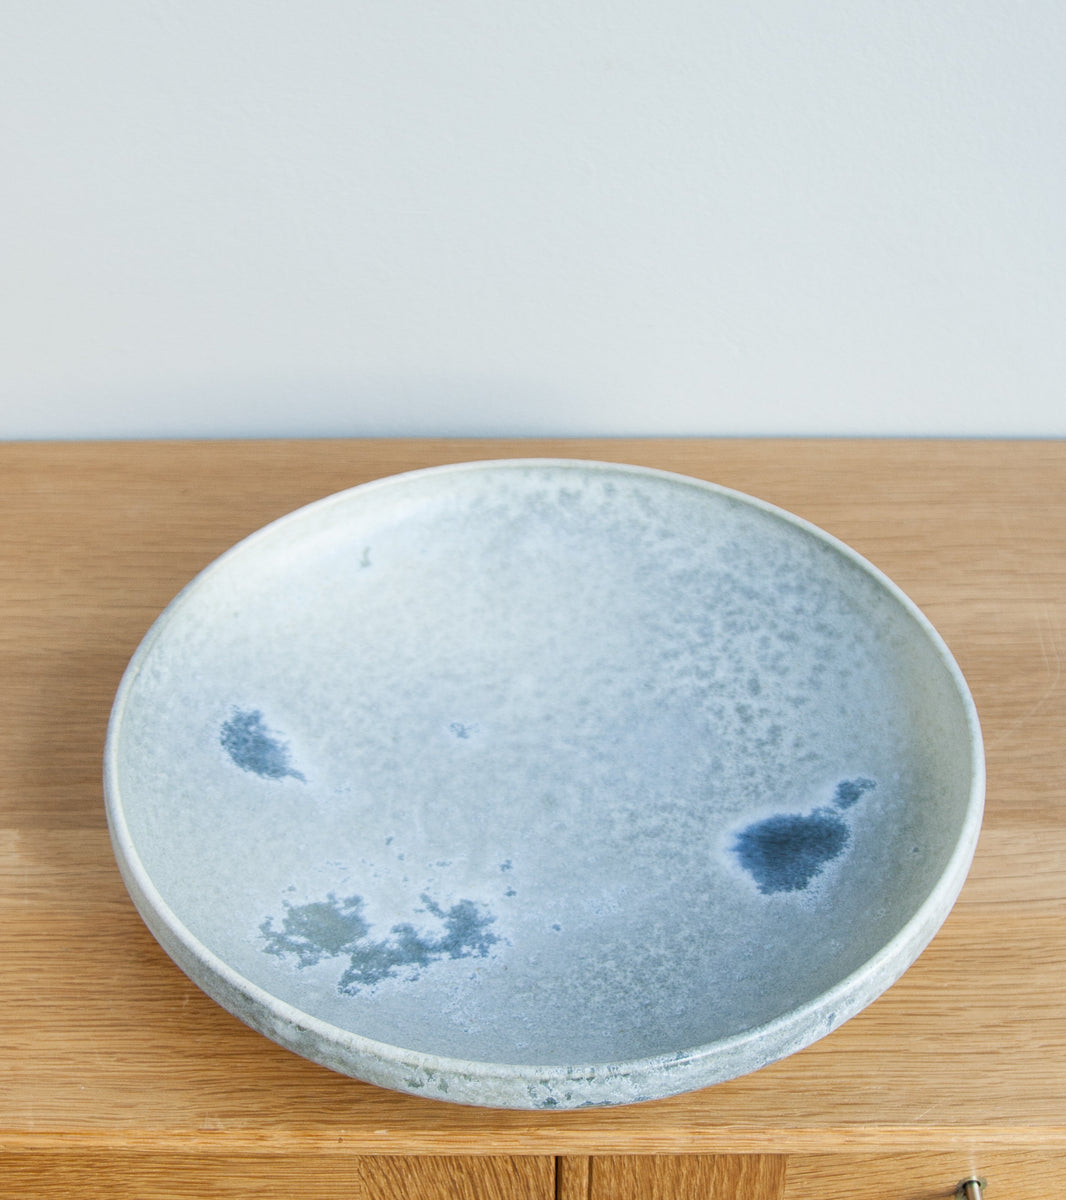 Serving Platter 15White & Soft Blue Glaze Kasper Würtz - Image 1